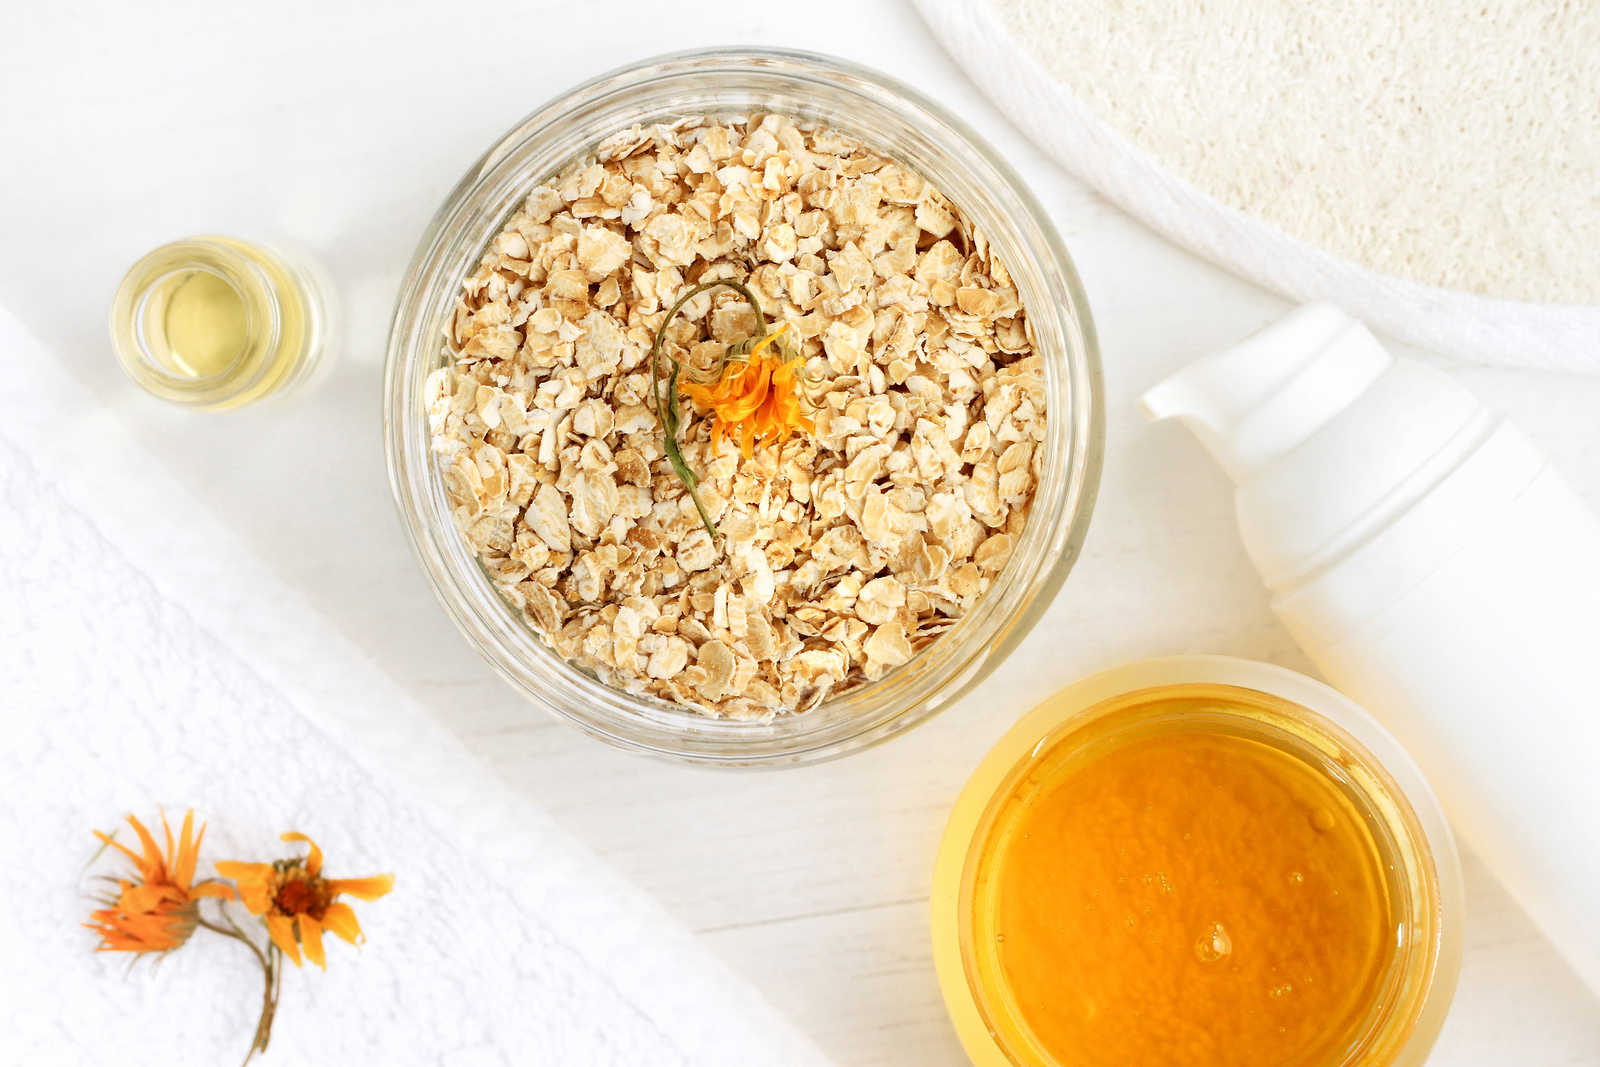 So long as your kids are not younger than a year, make these honey recipes!